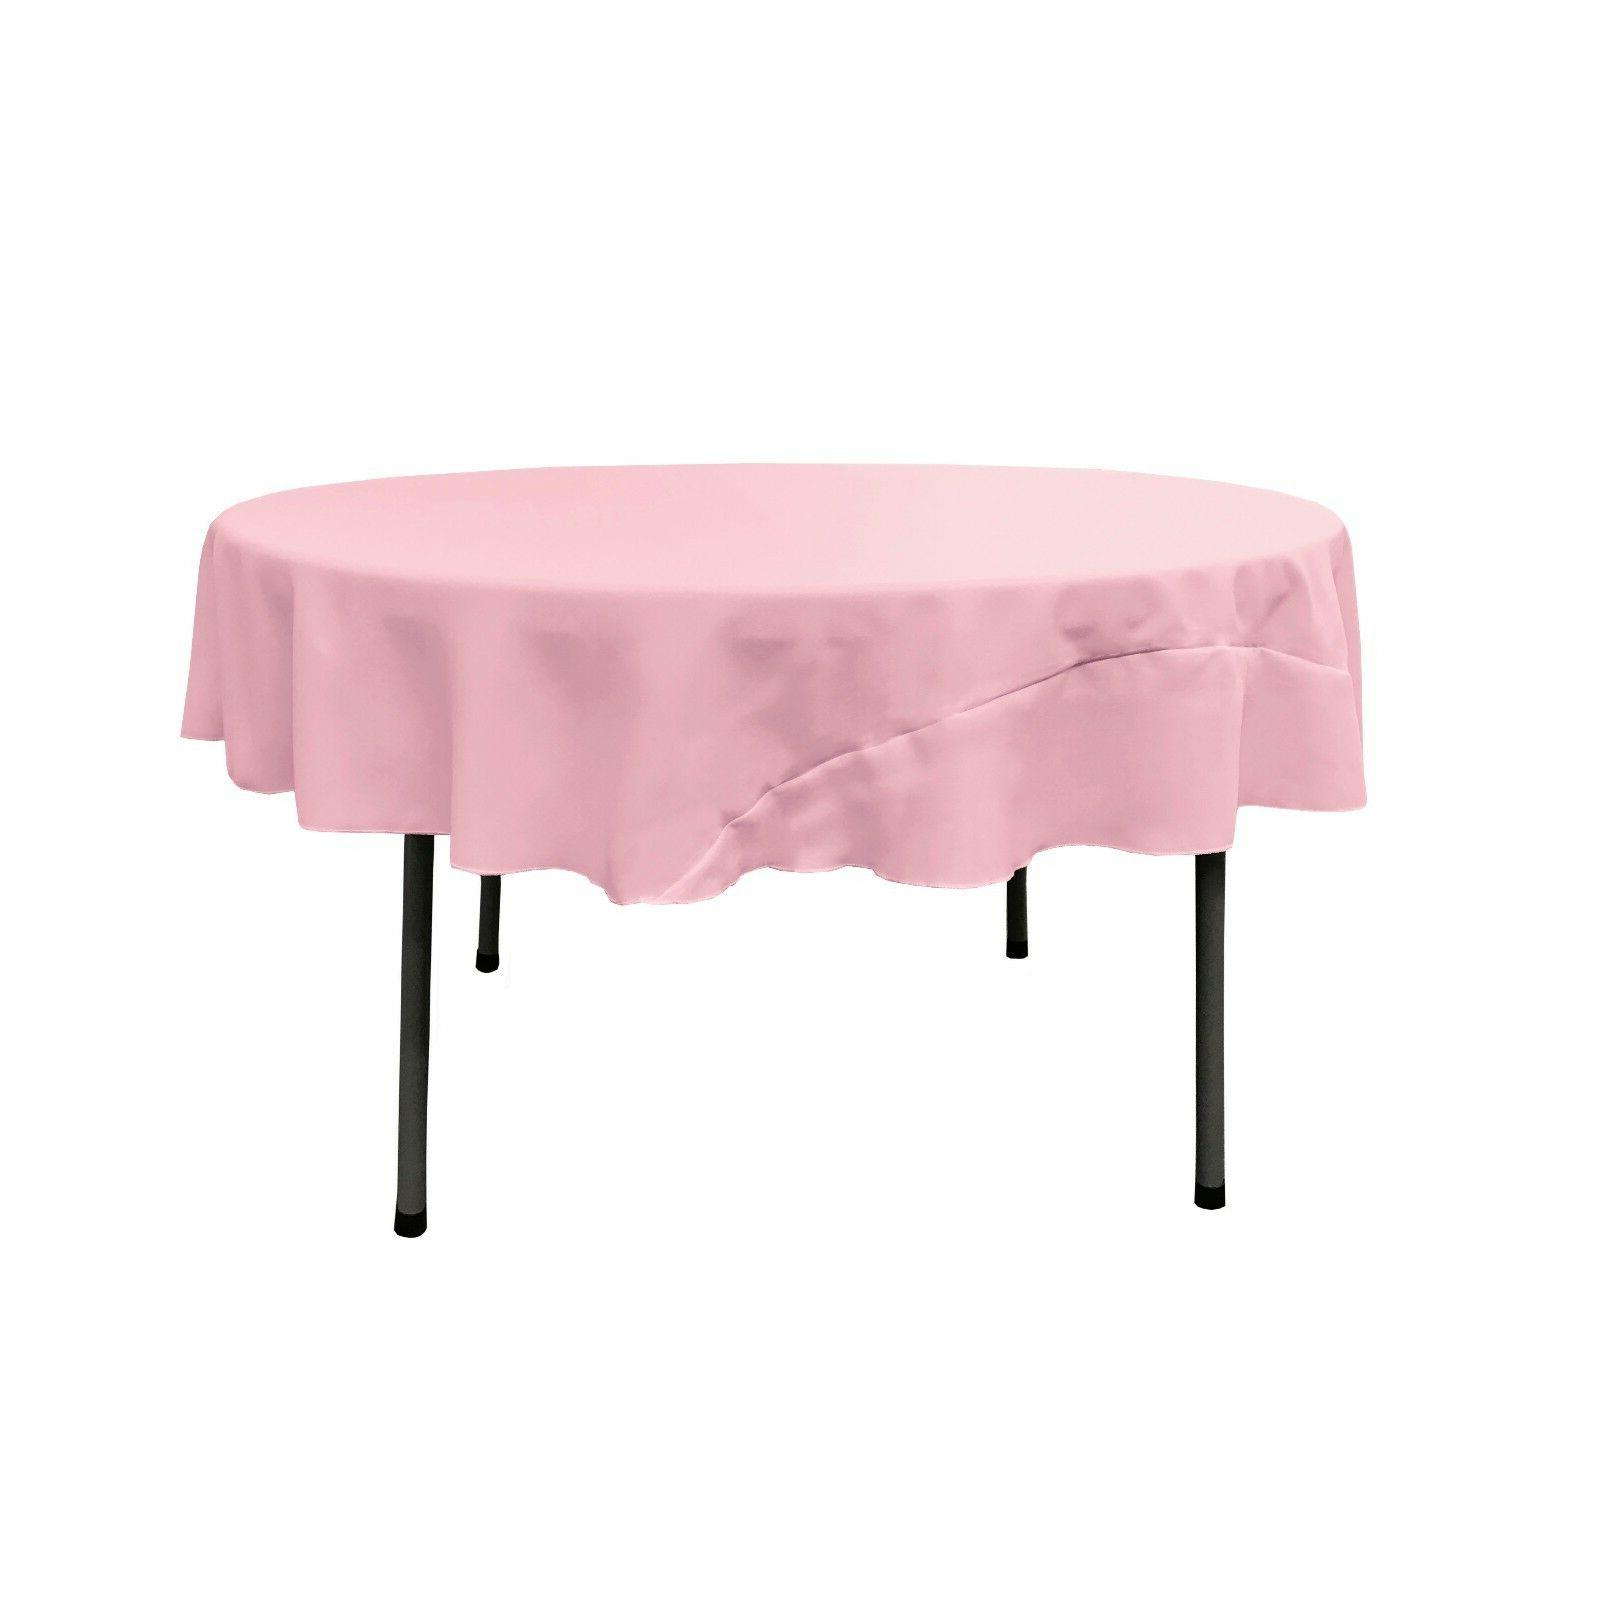 polyester poplin round tablecloth 72 inches made